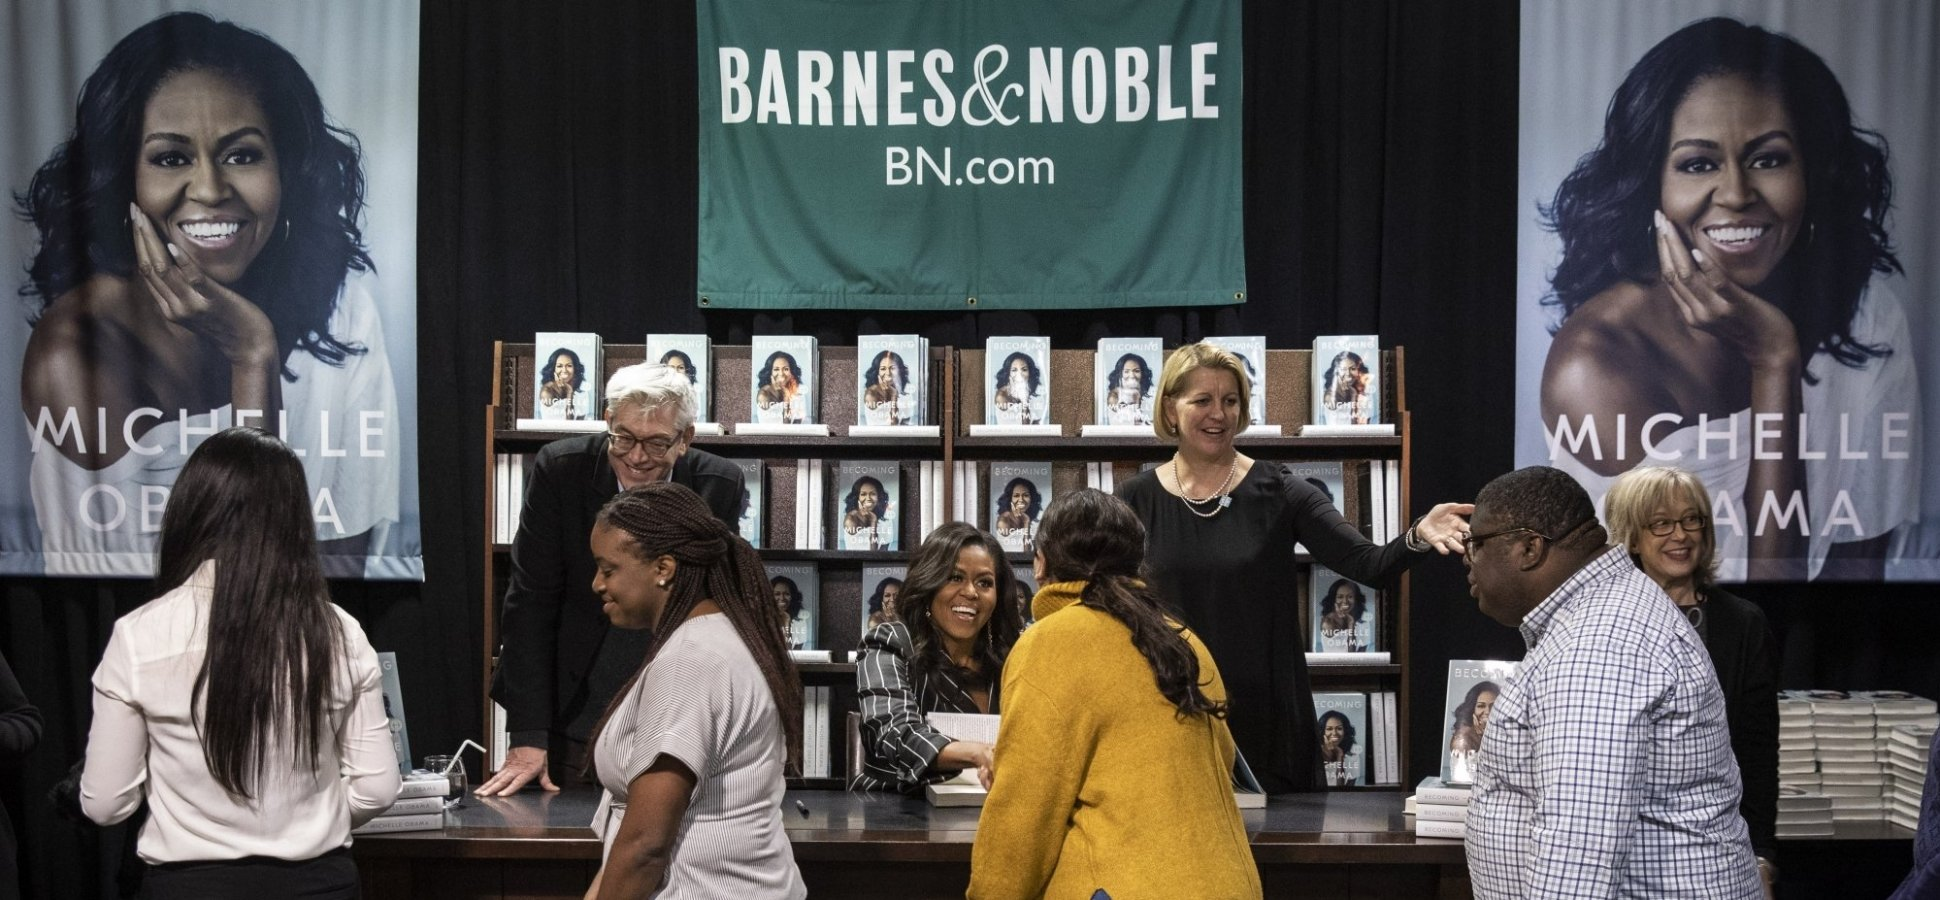 Hedge Fund Buys Barnes Noble. It Could Be Very Good News for Customers